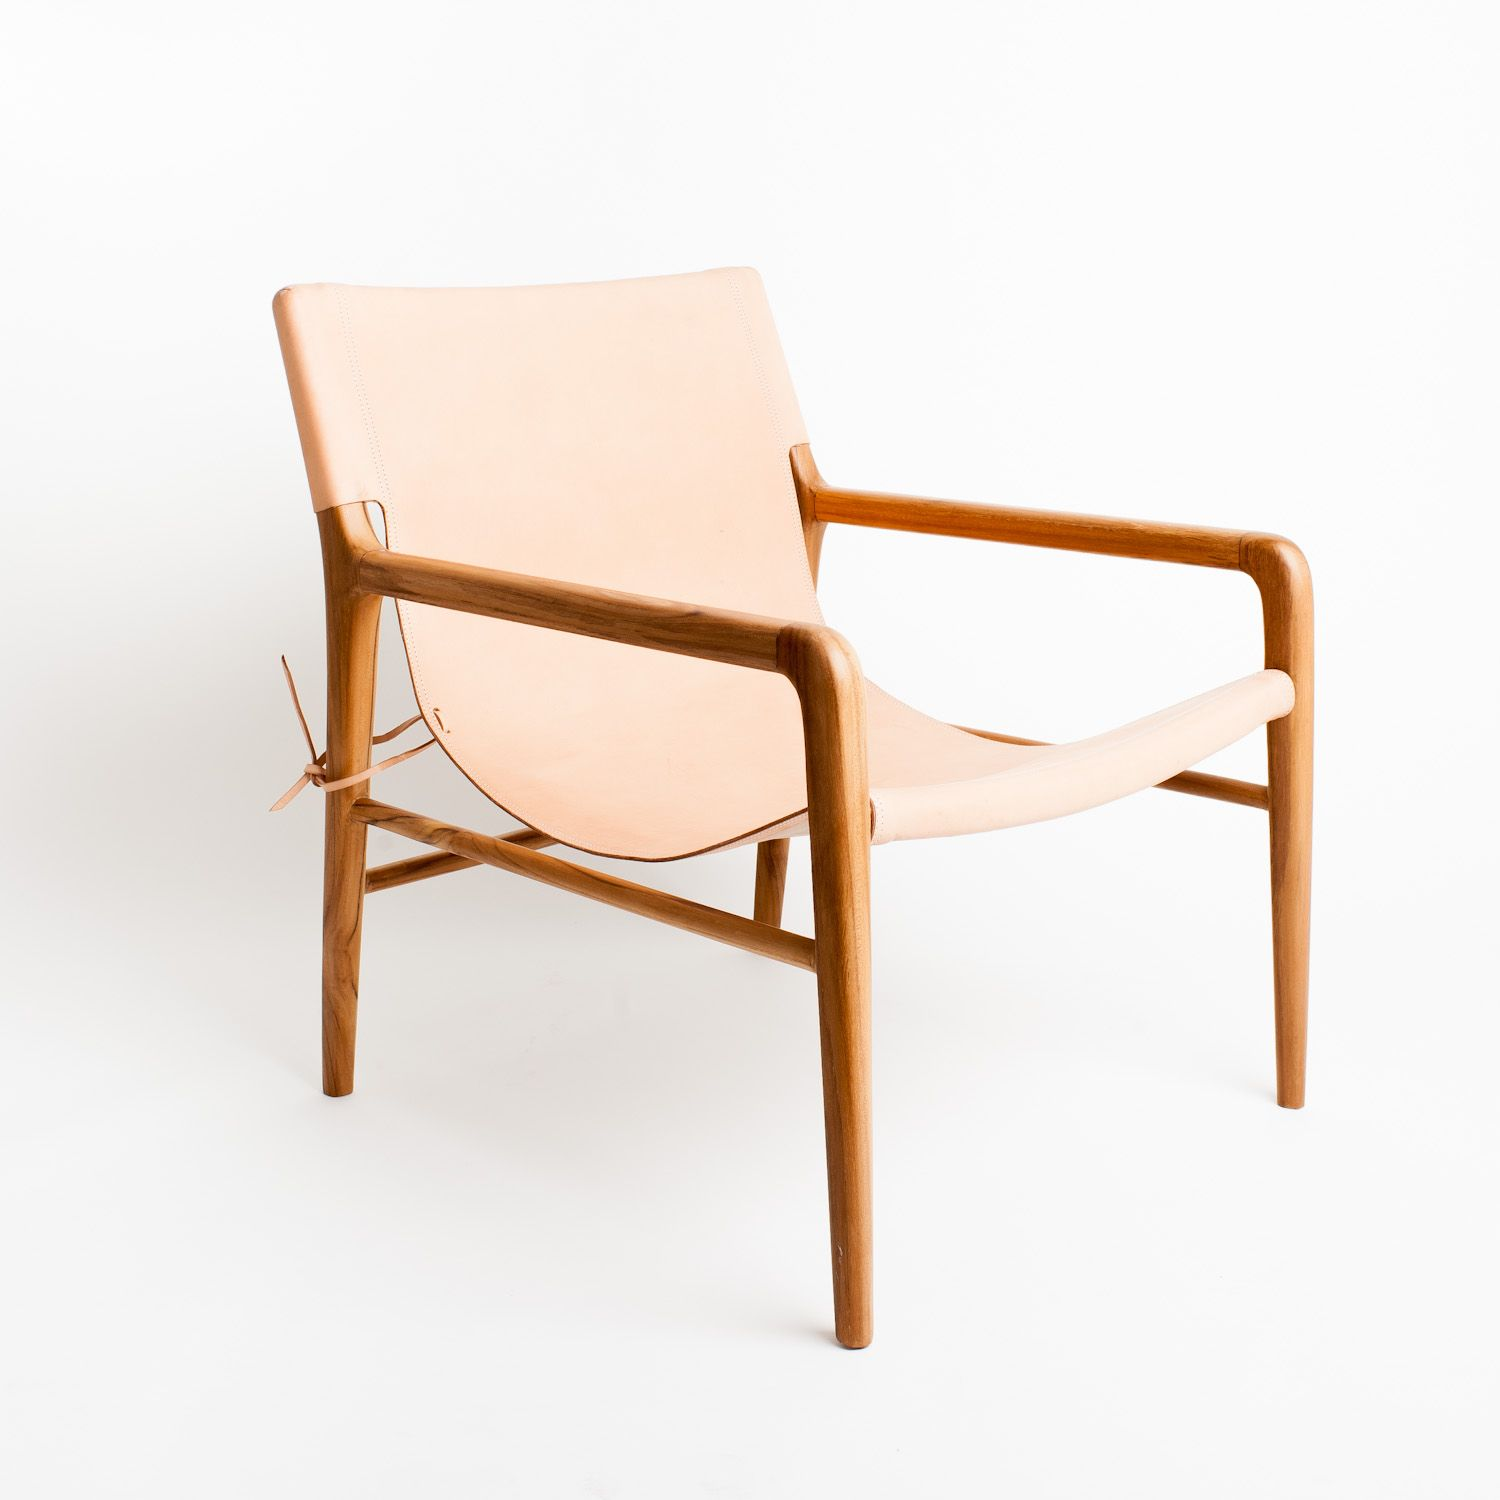 The Smith Blush Leather Sling chair available at